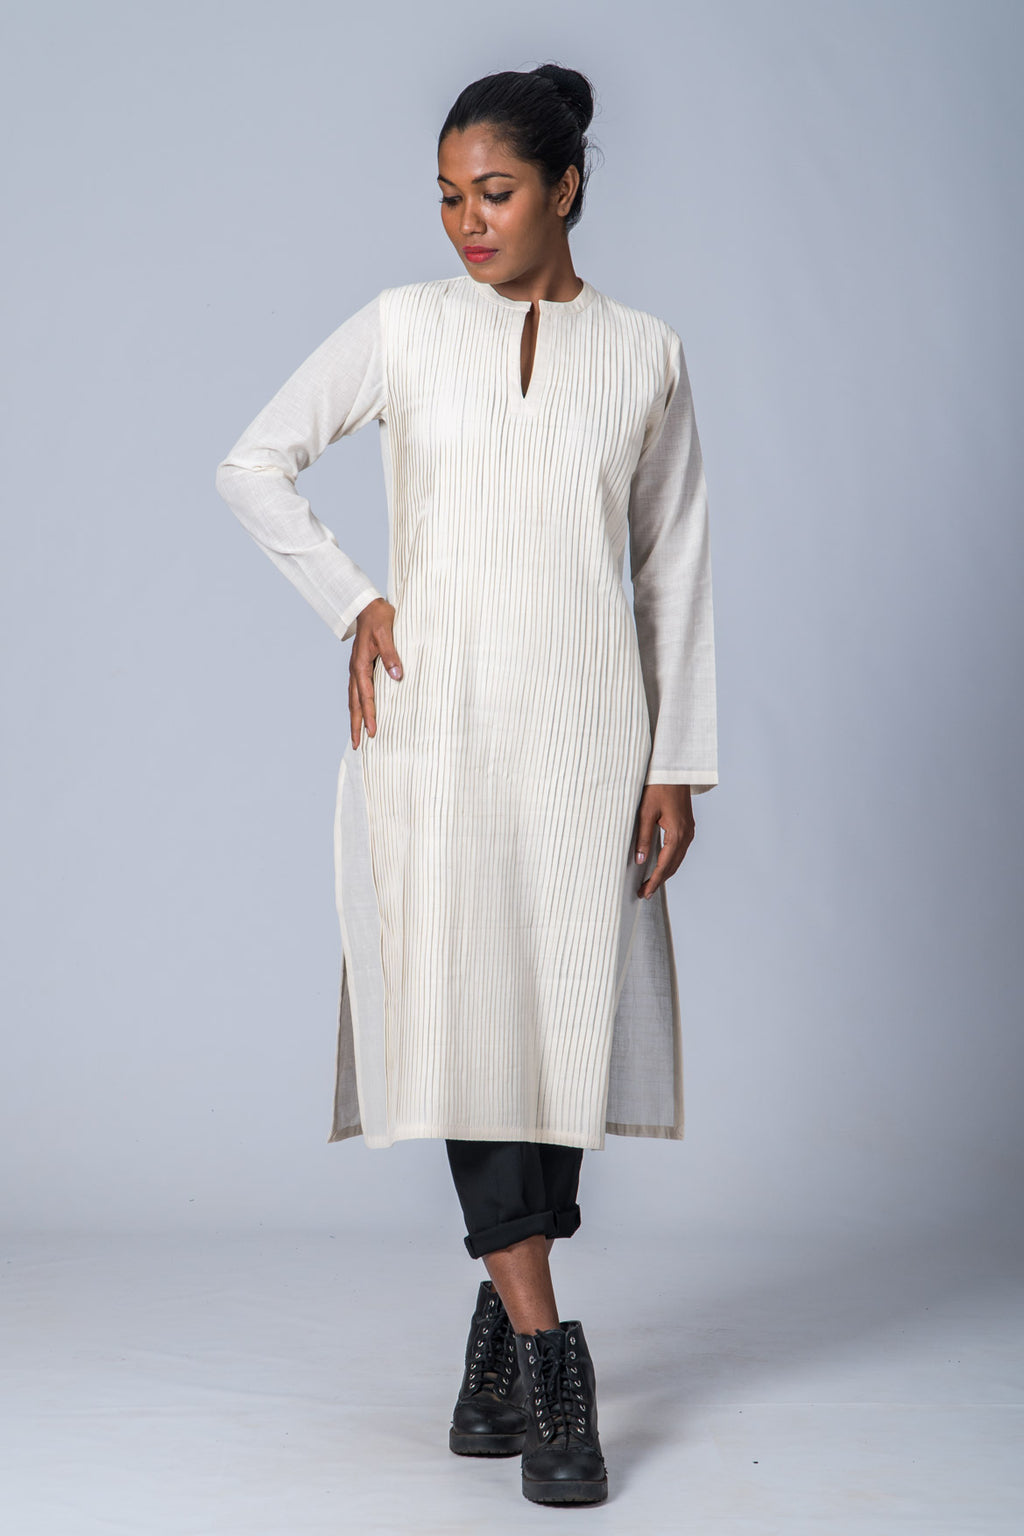 White Organic cotton Kurta - COTTON WEAR - Upasana Design Studio